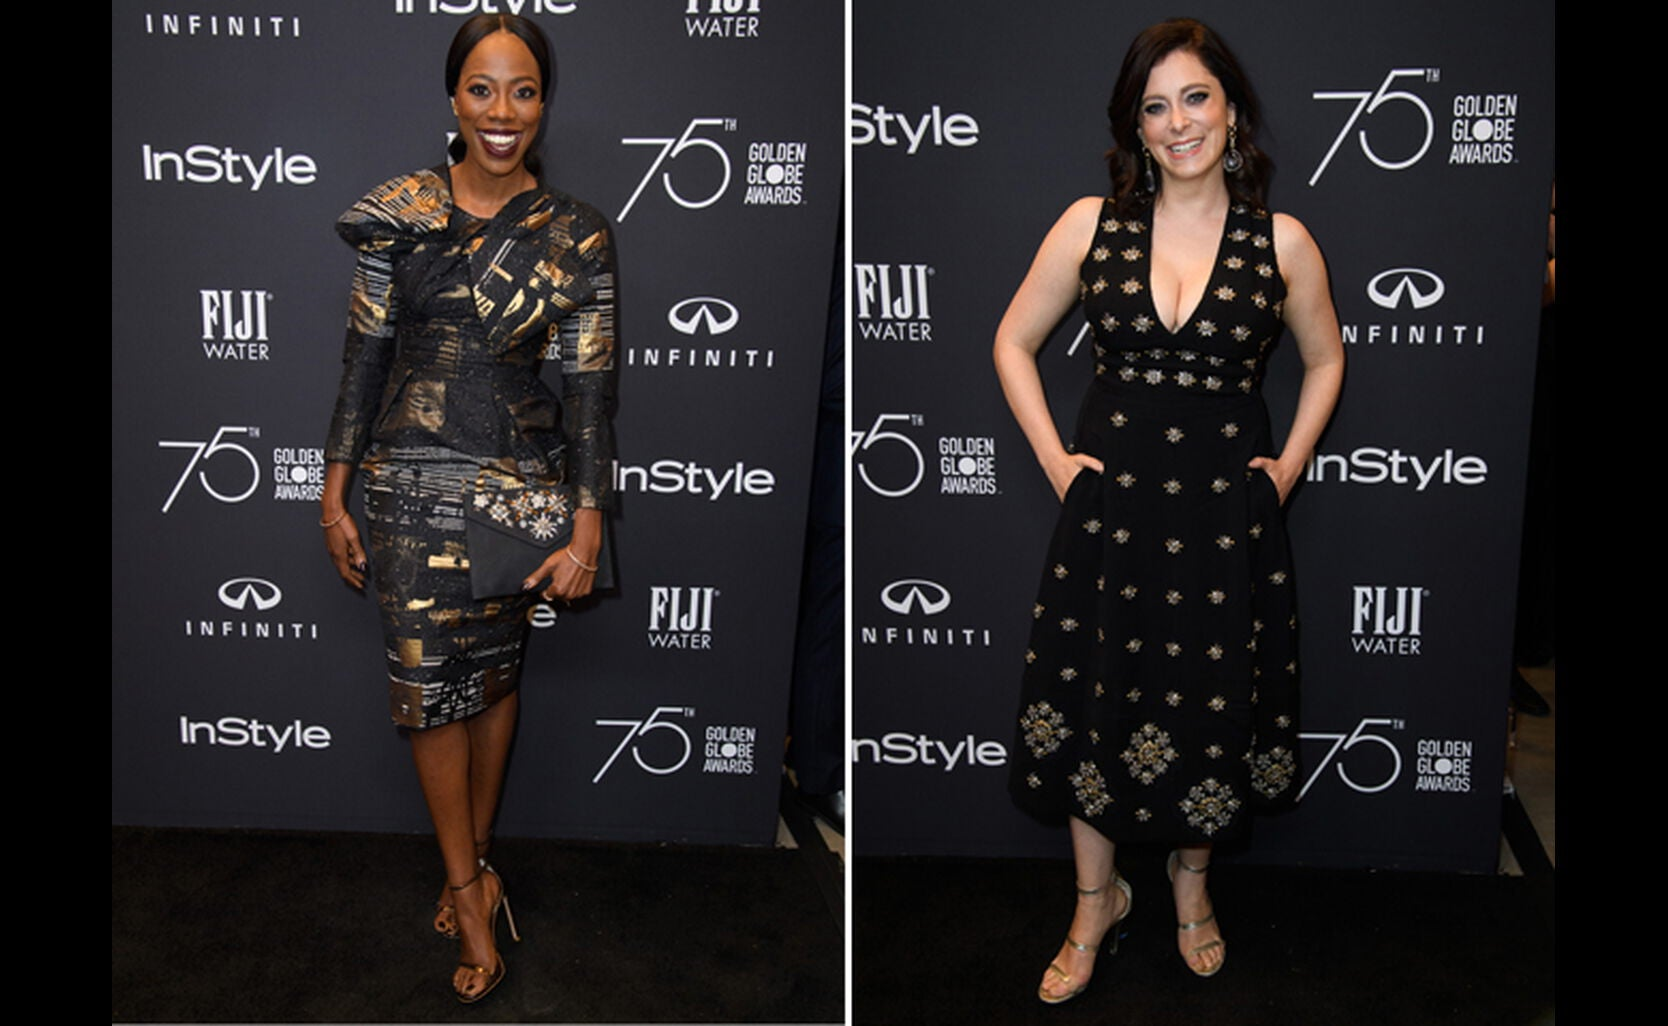 Yvonne Orji and Rachel Bloom